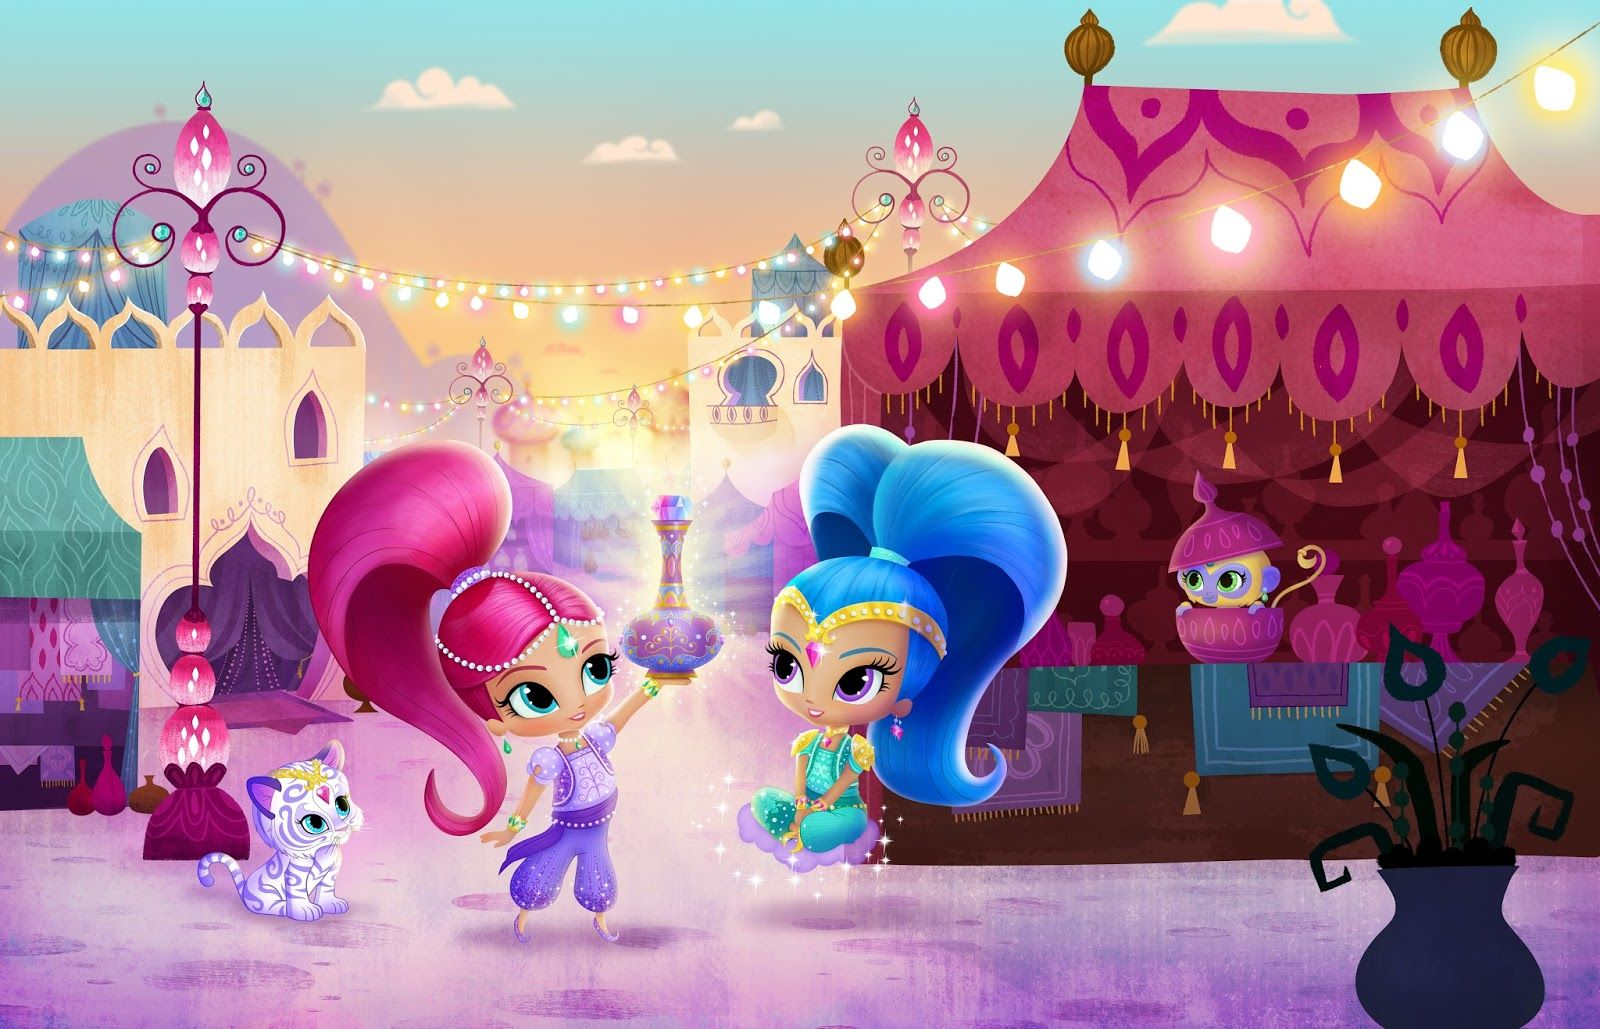 Best Shimmer And Shine Wallpaper (With images) Shimmer